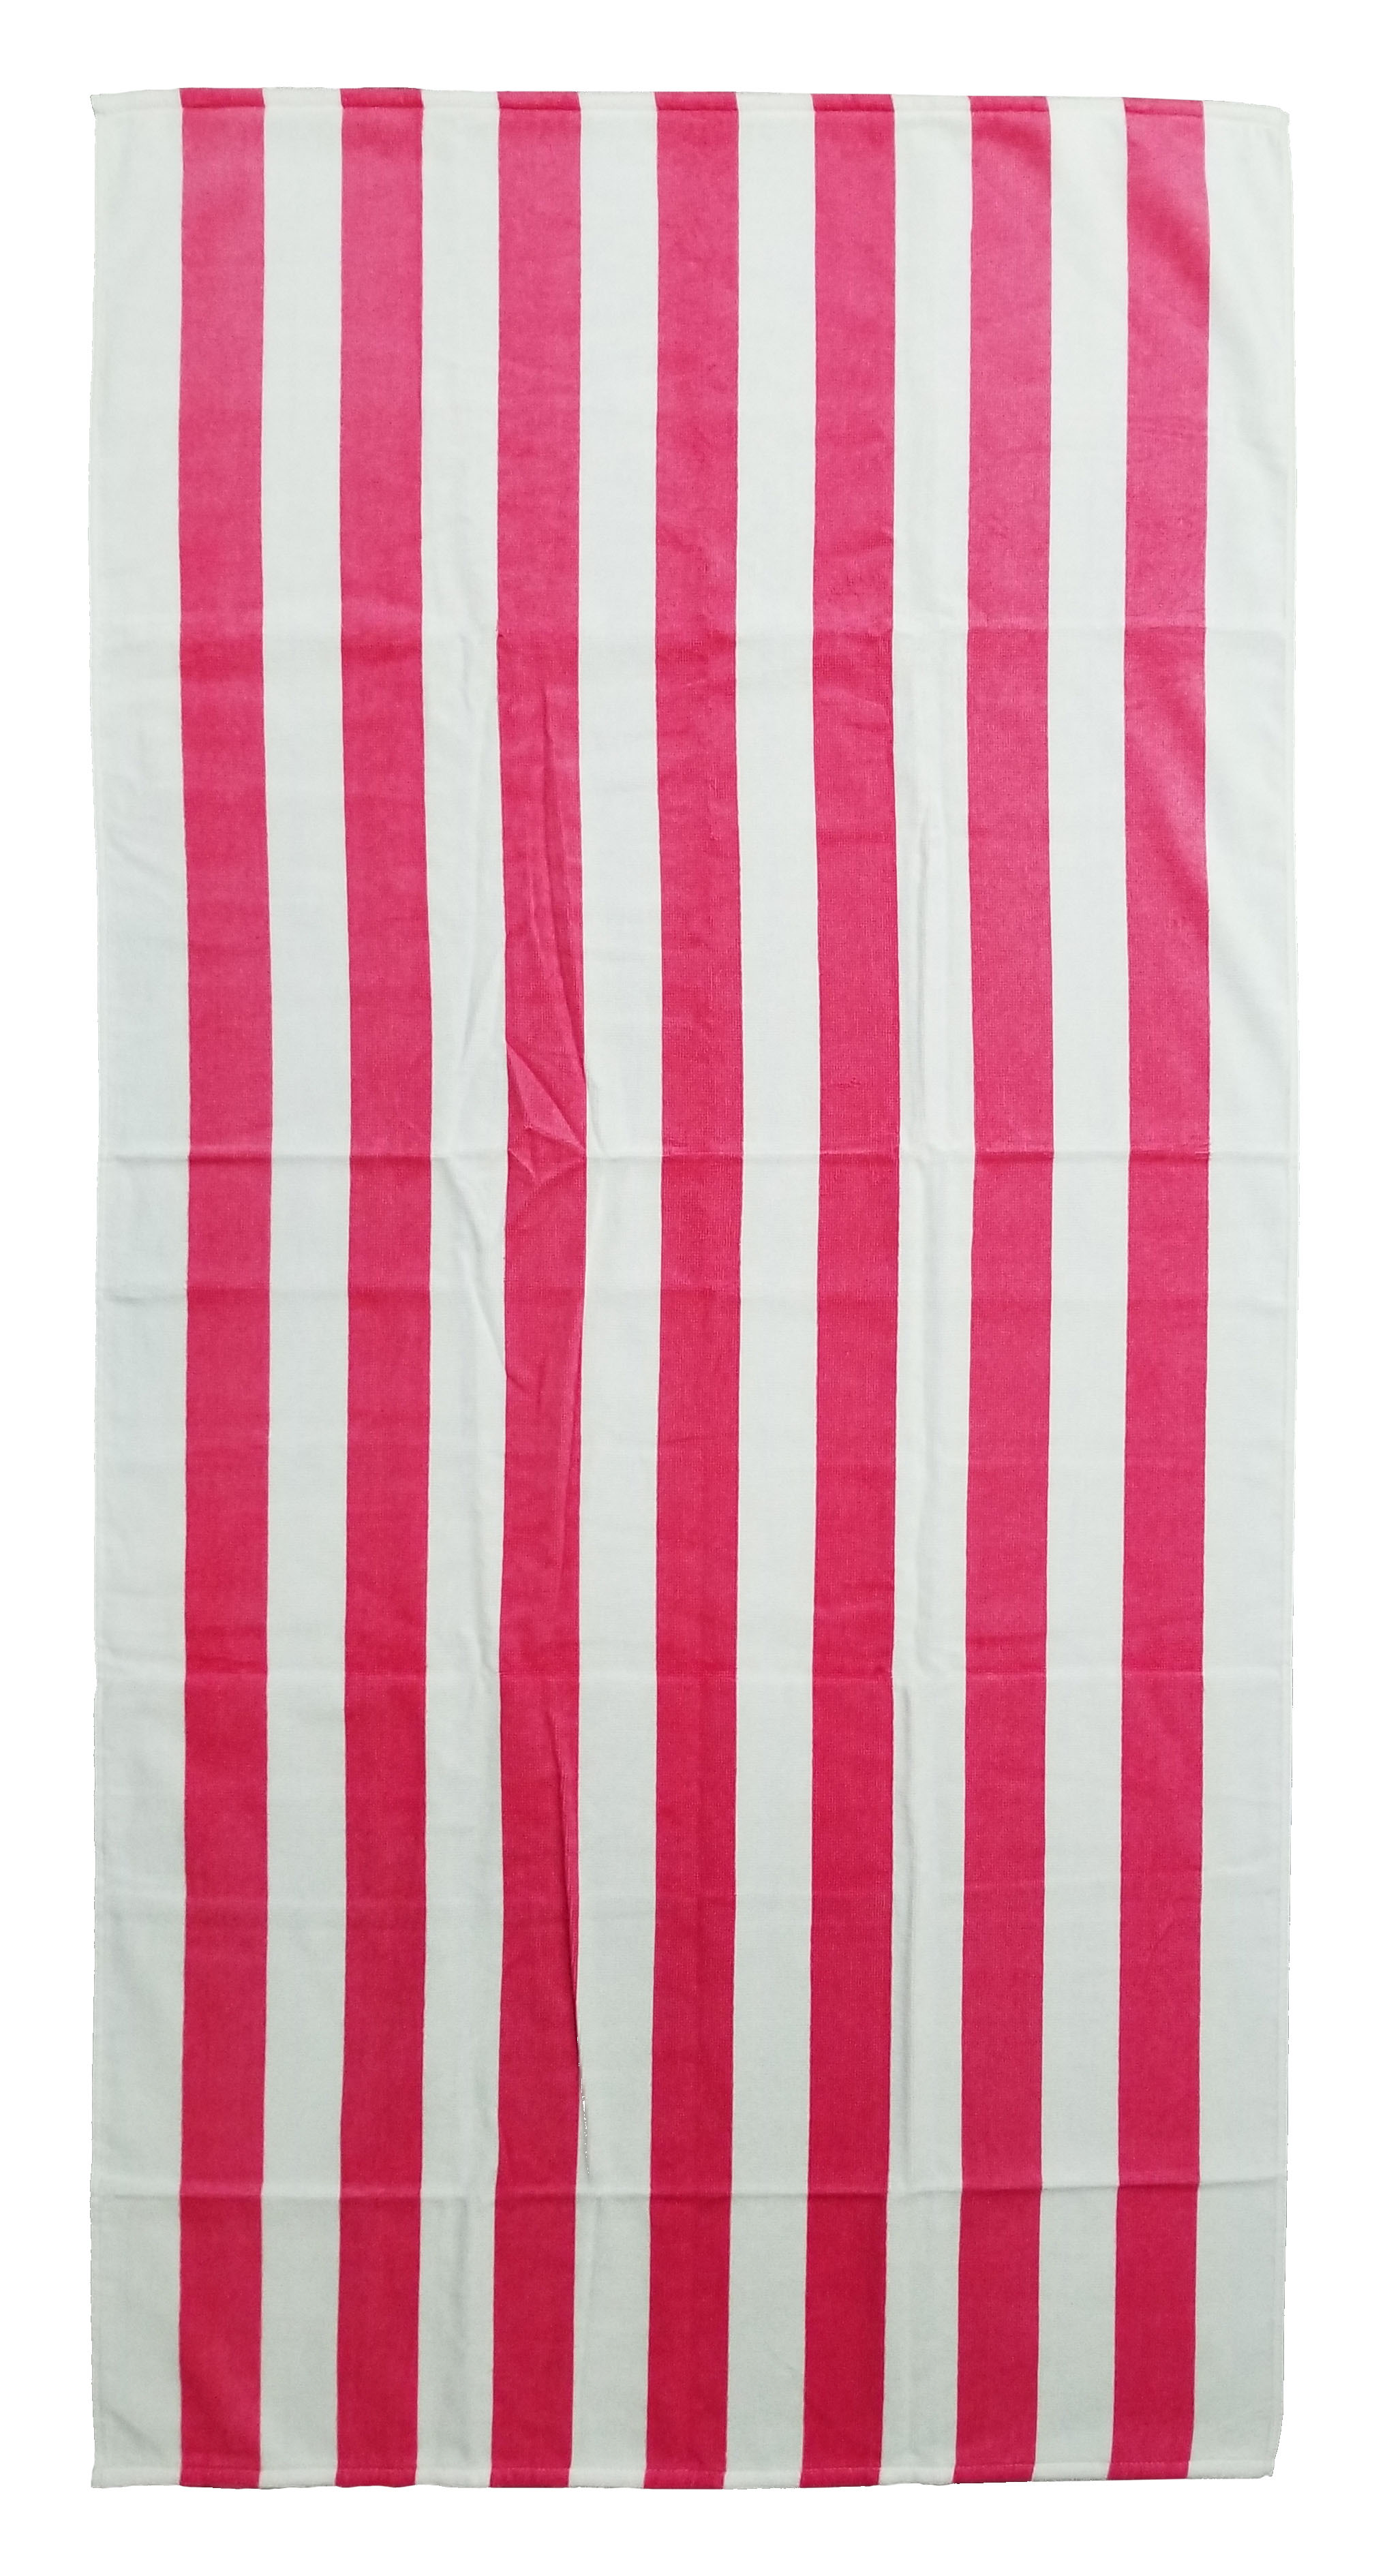 EMBROIDERED 30x60 Pink Cabana Striped Beach Towel Bahia Collection by Dolhler.